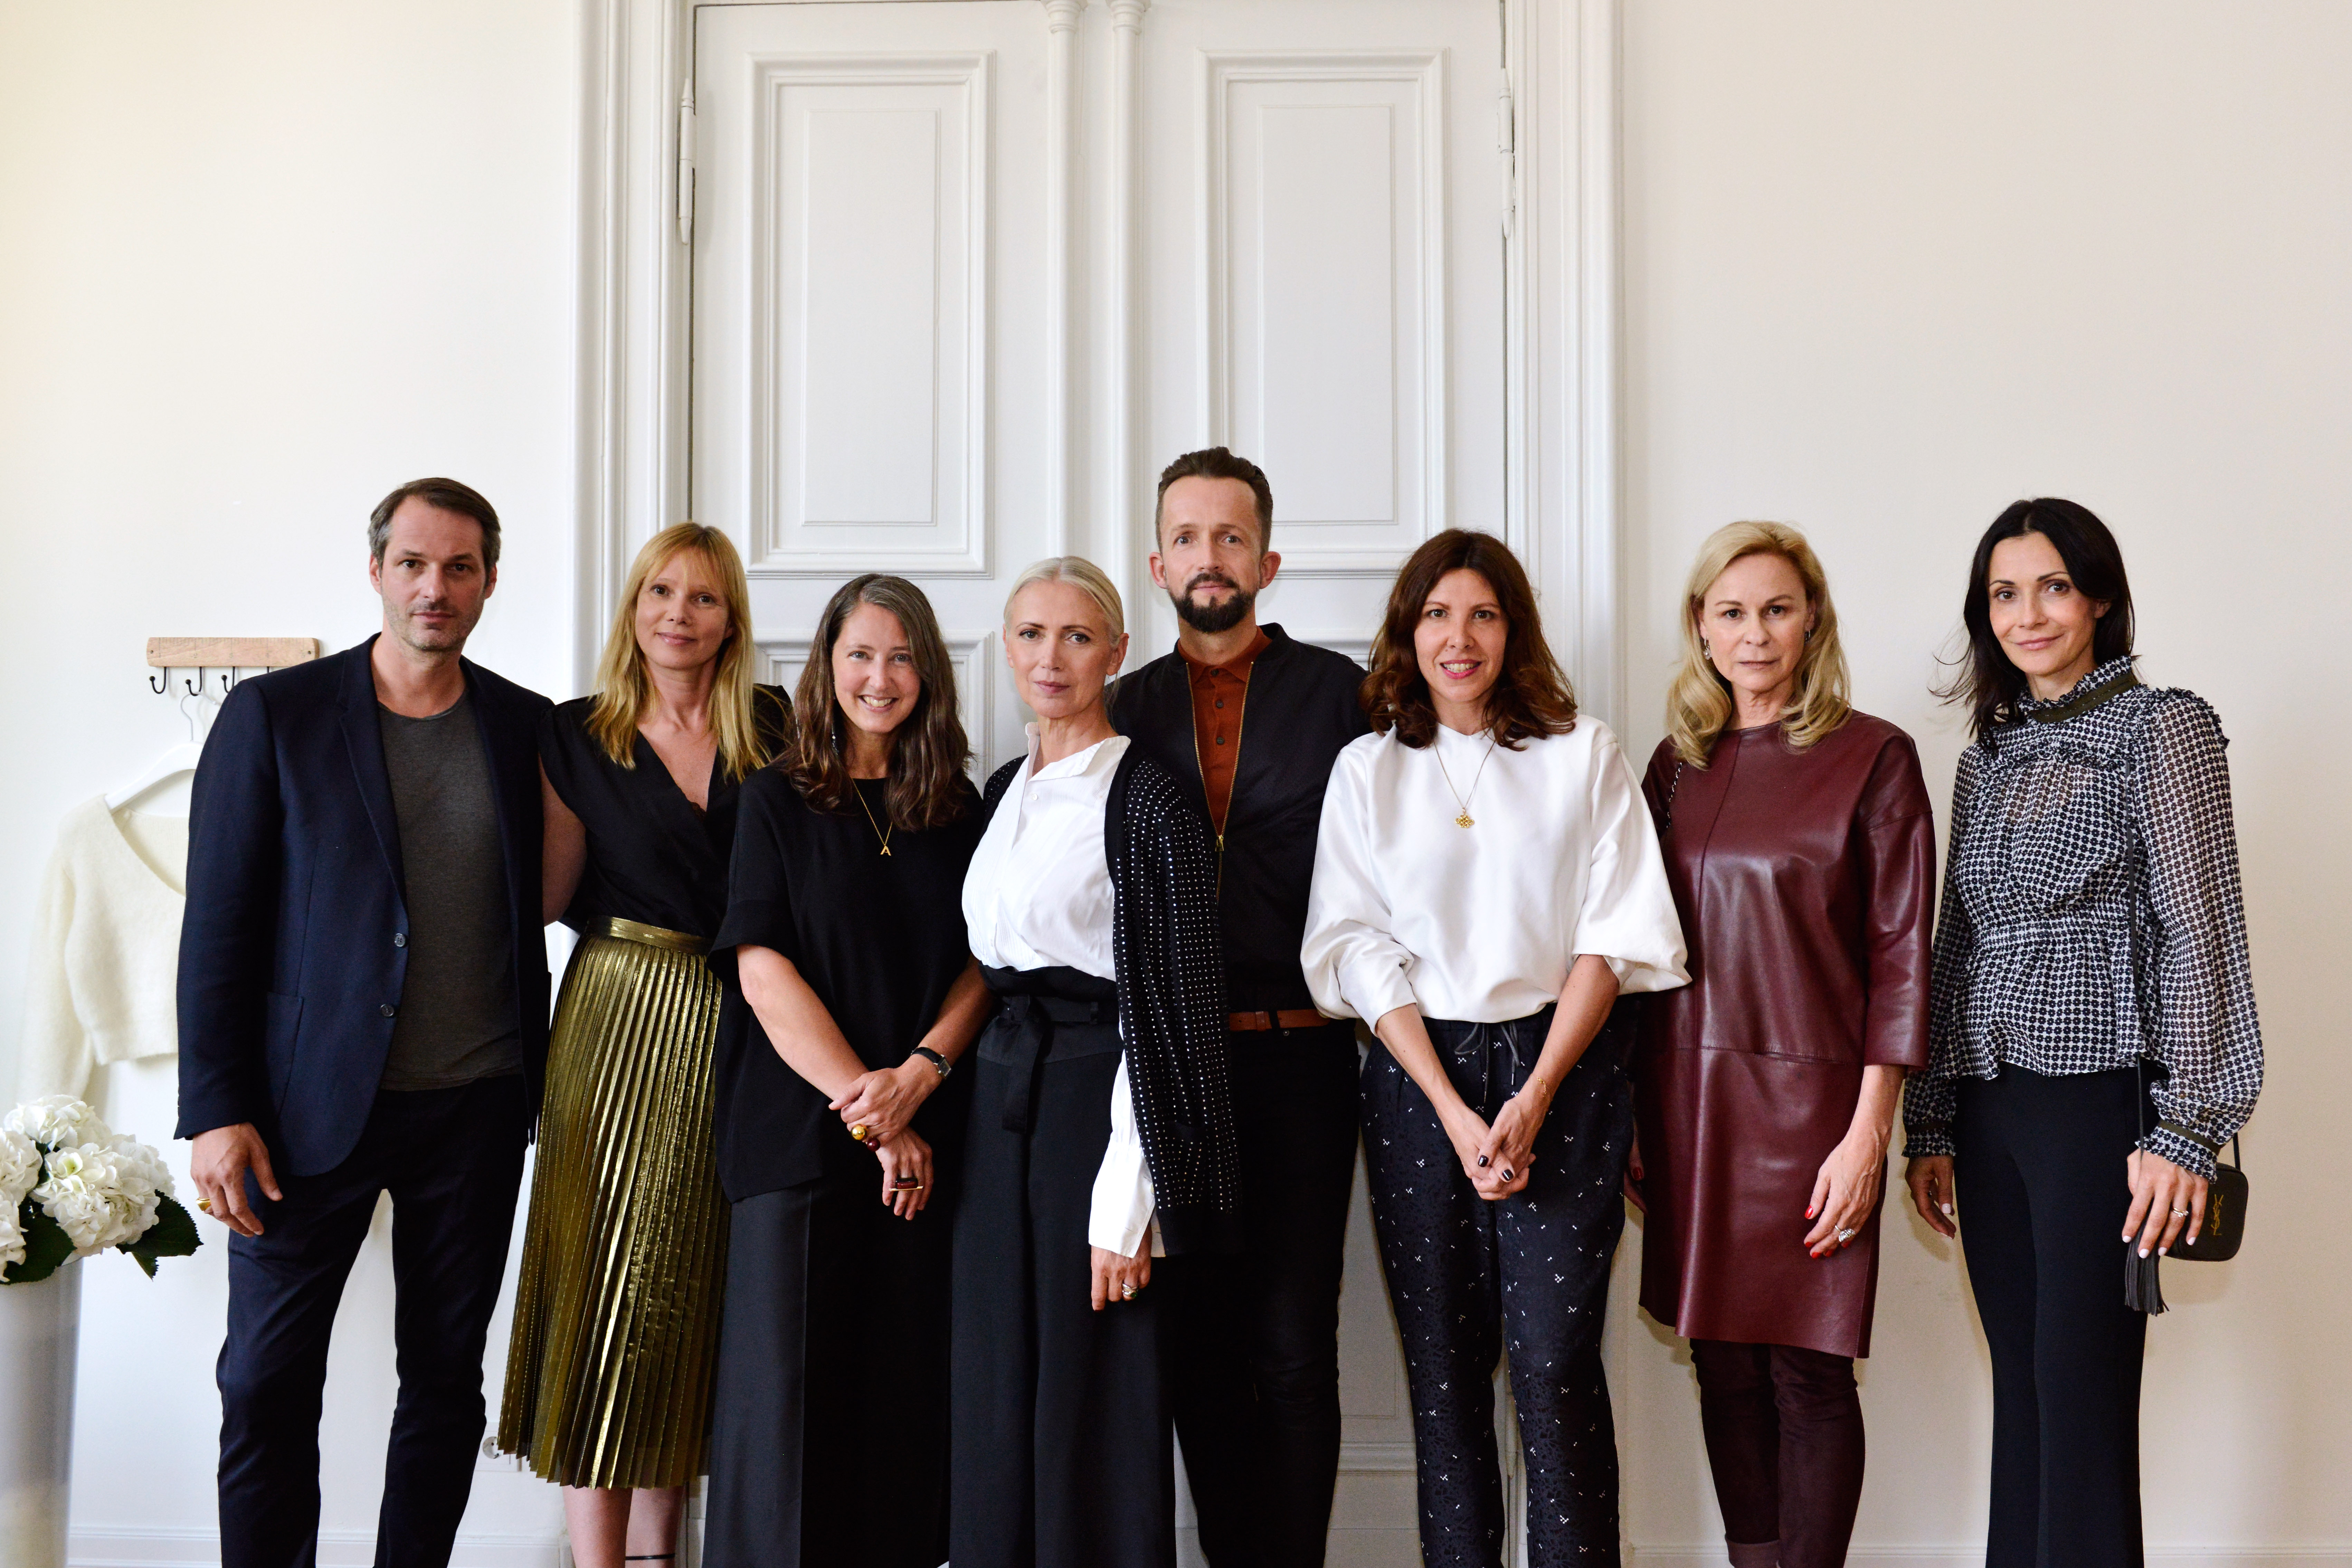 The Fashion Council Germany and H&M's Ann Sofie Johannson and Thorsten Mindermann